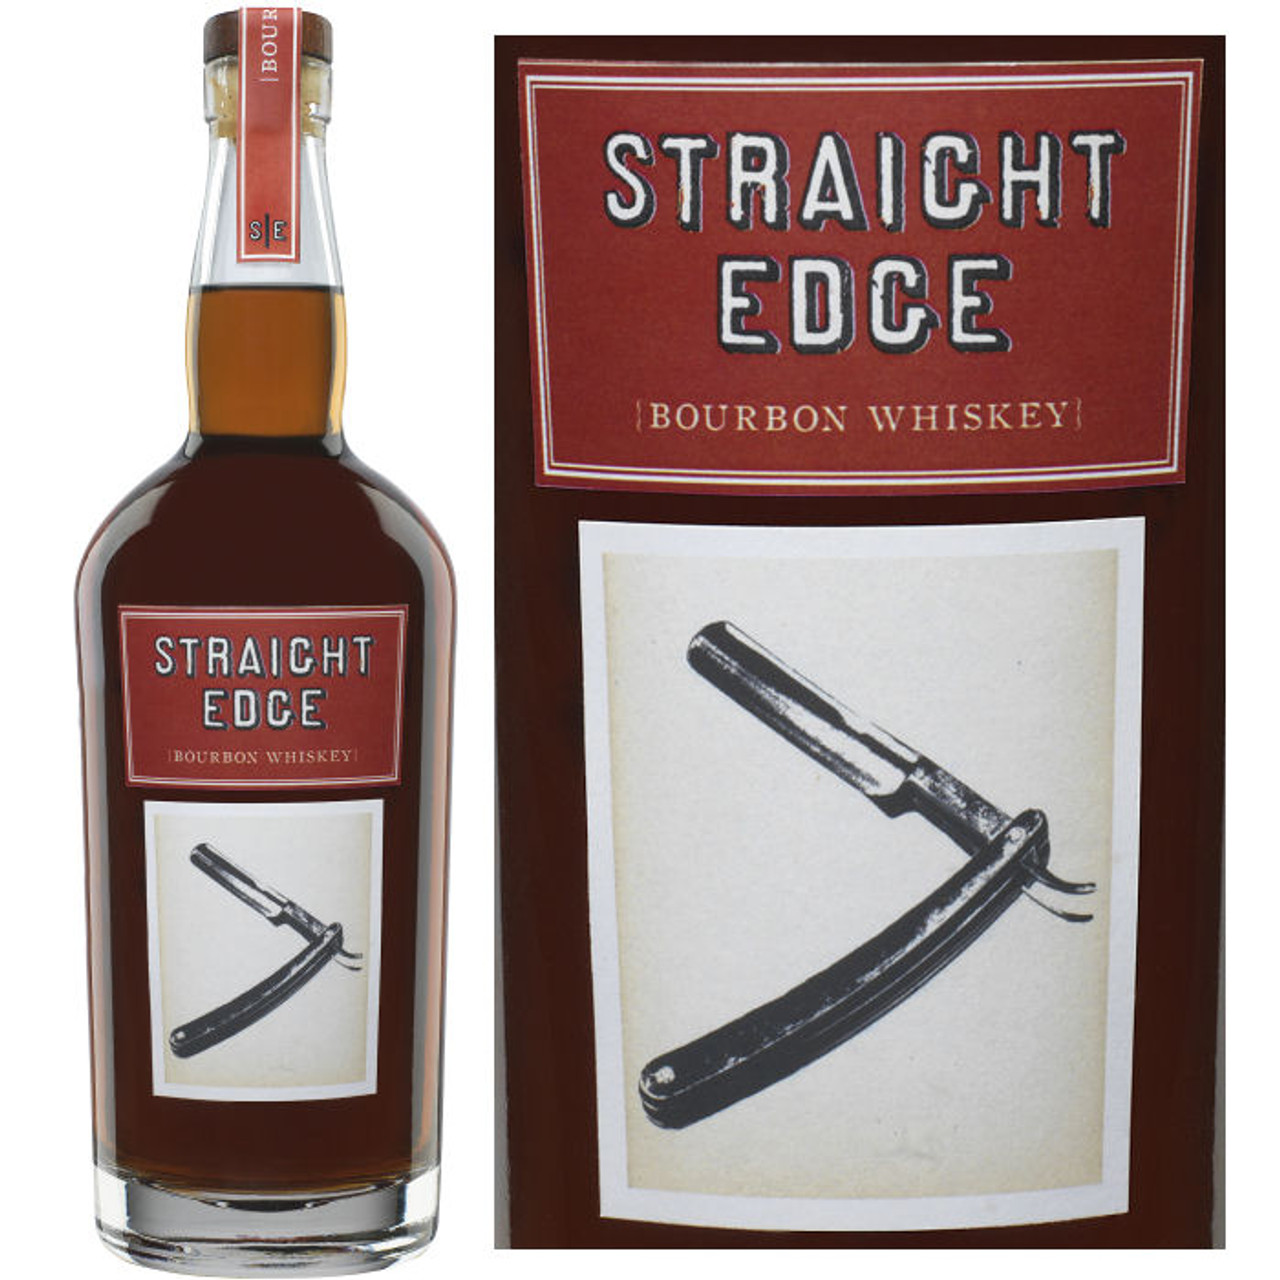 Straight Edge Bourbon Whiskey 750ml